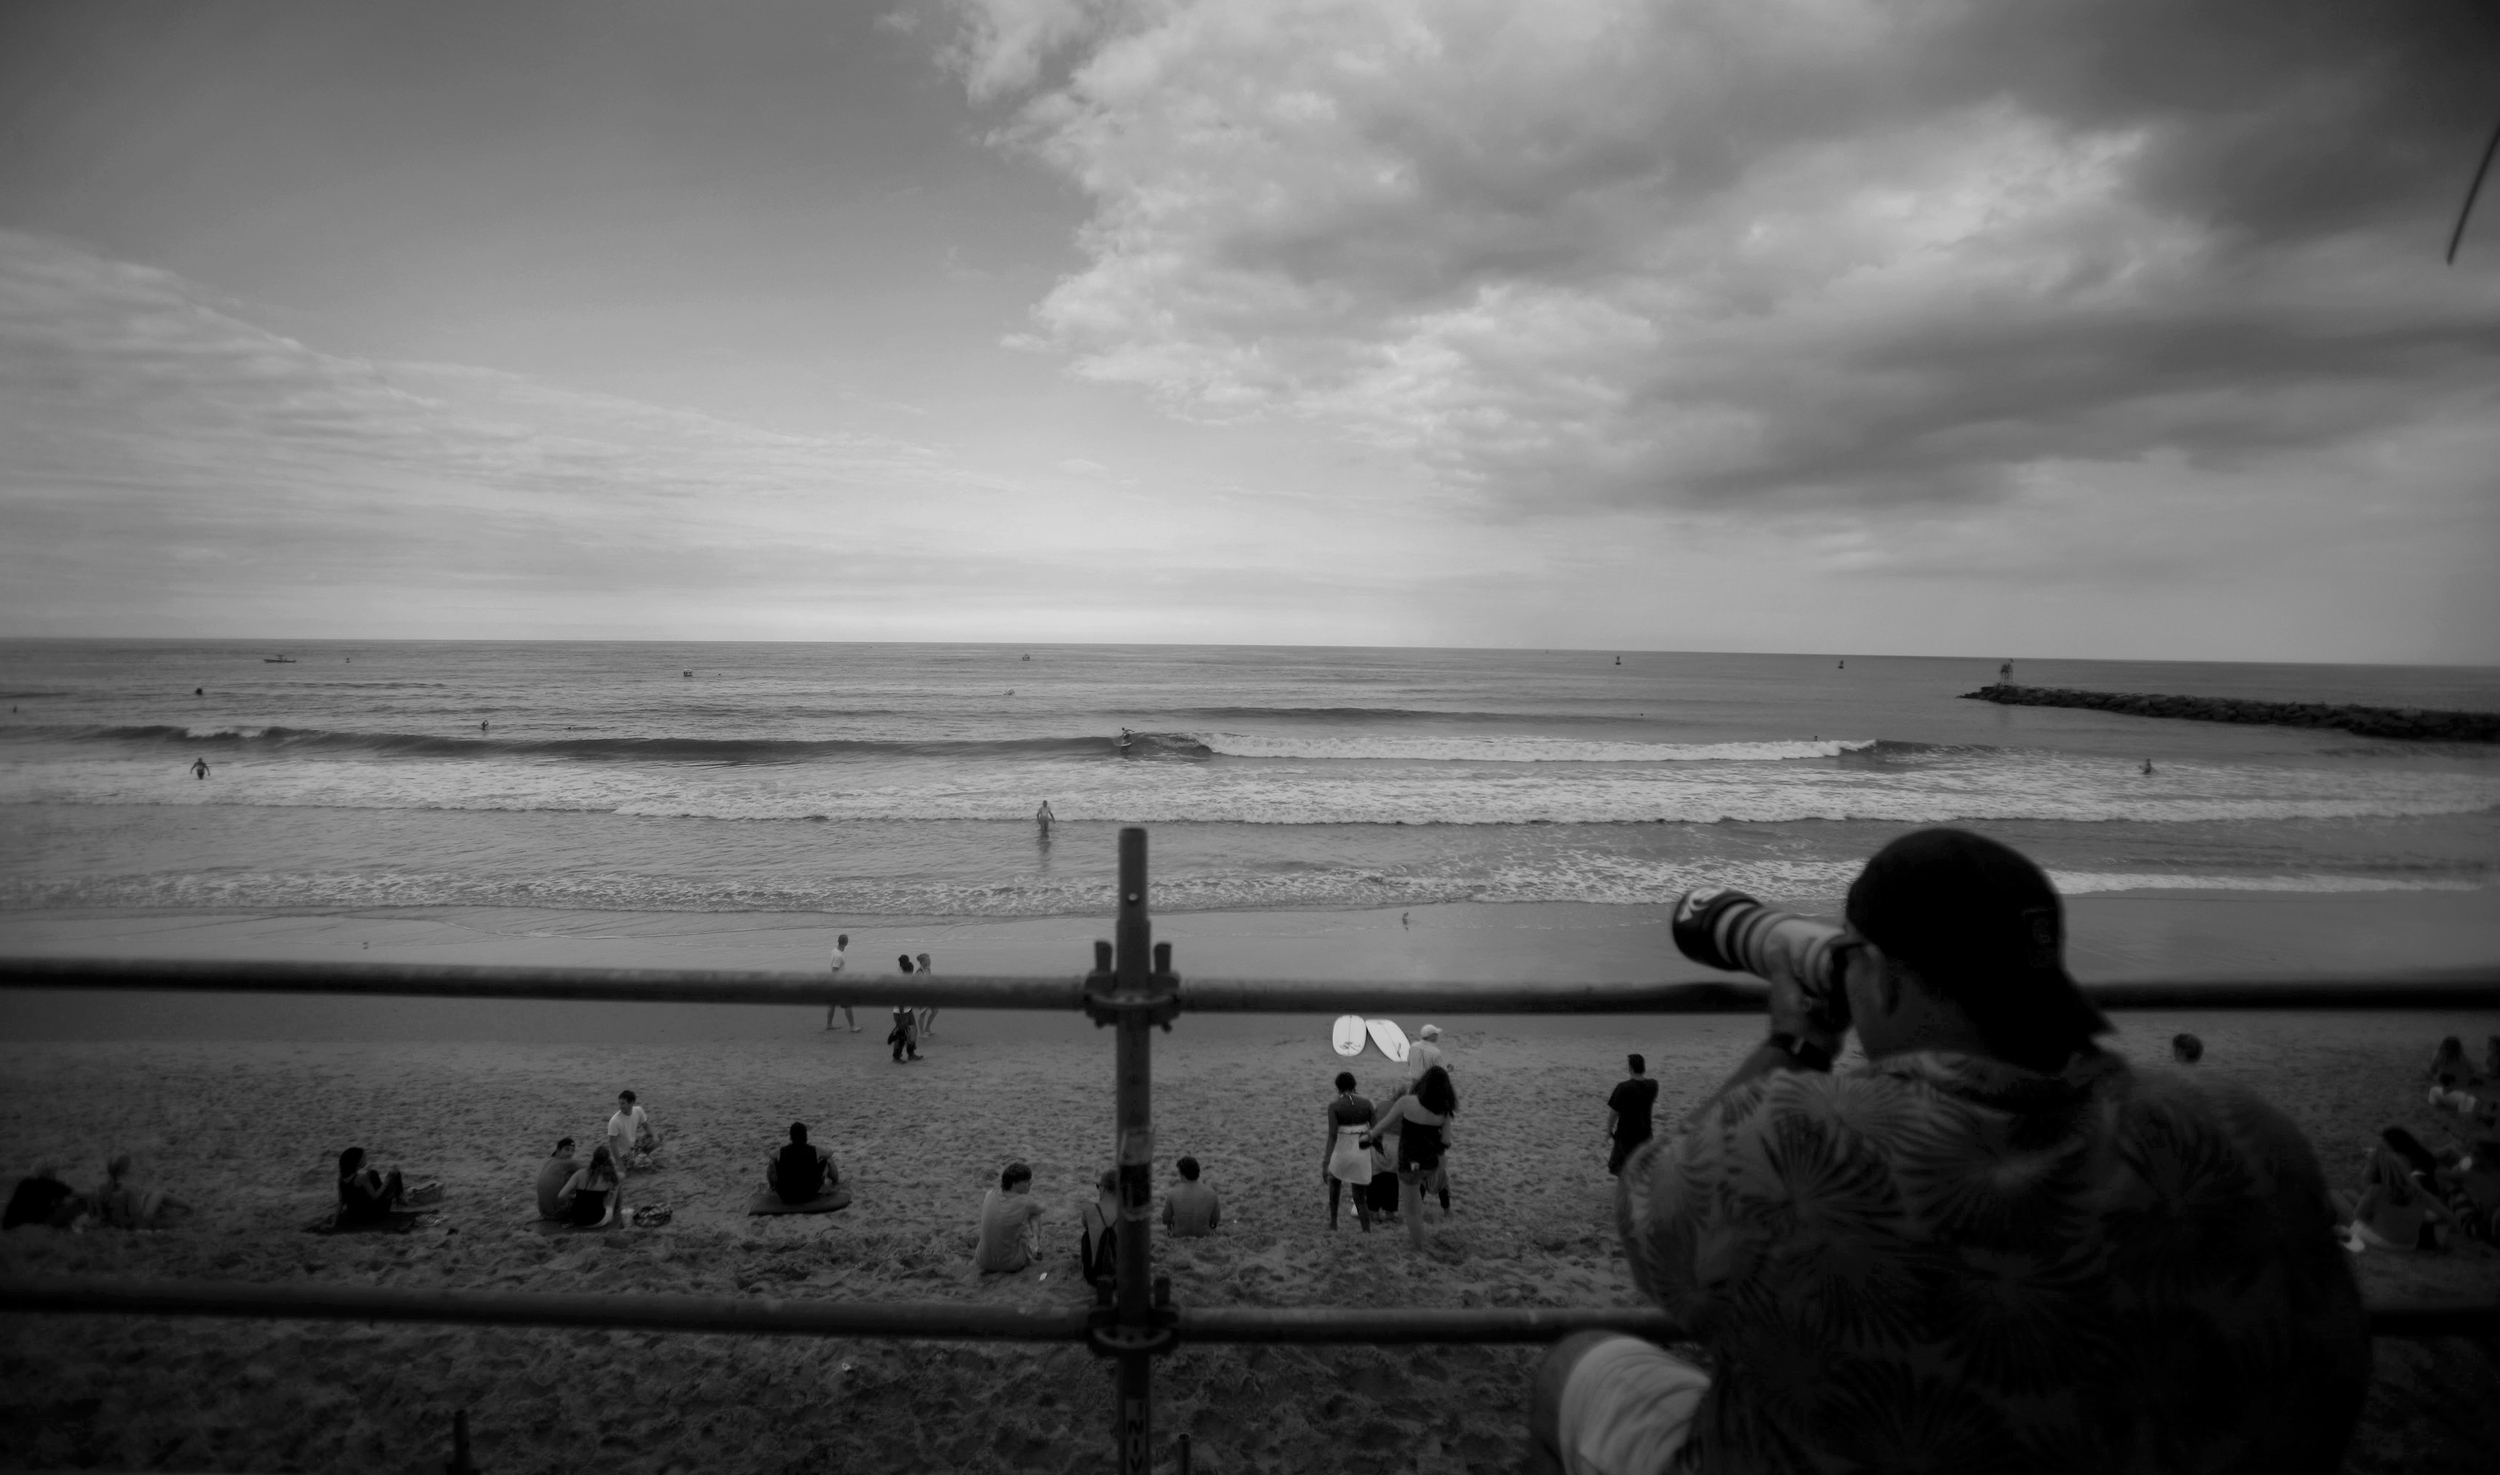 2010, Paul West working his camera from the judges scuffling during the ECSC.